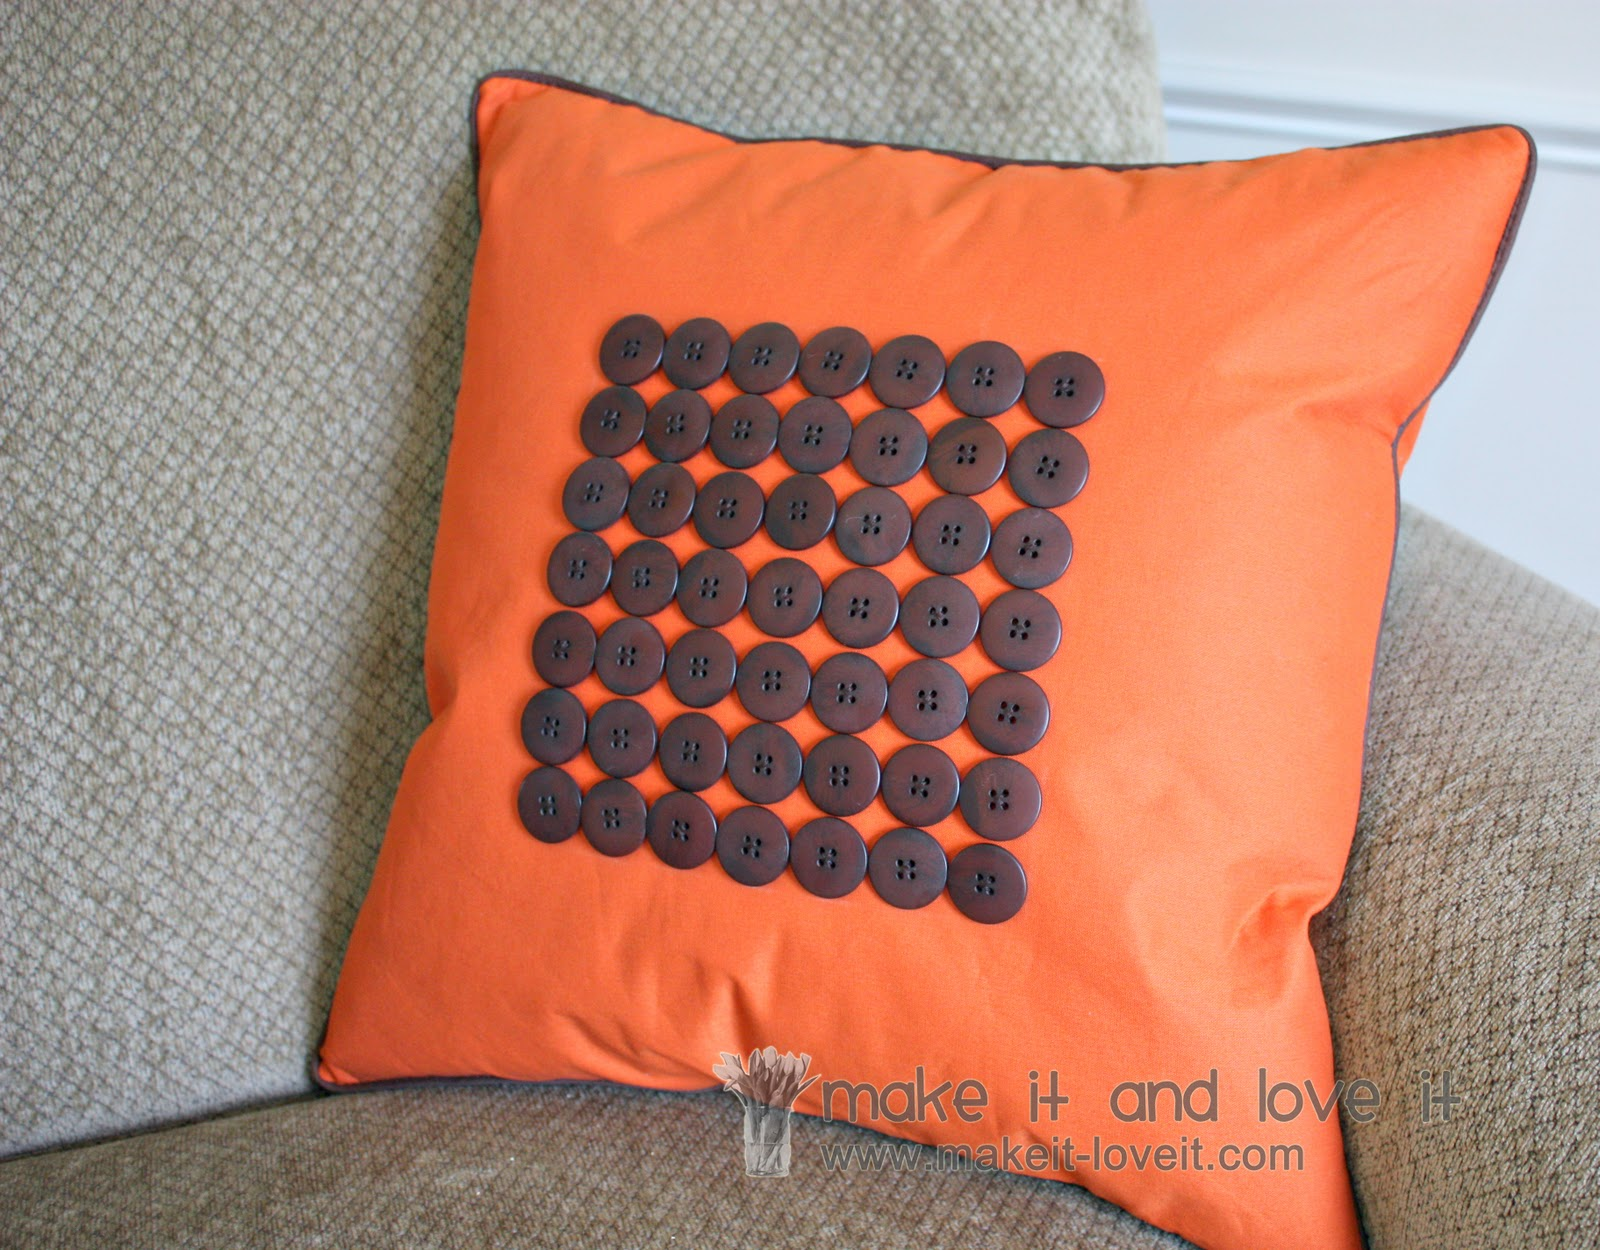 How To Make Decorative Throw Pillow Covers : Decorate My Home, Part 20 - Button/Piping Pillow Cover Make It and Love It